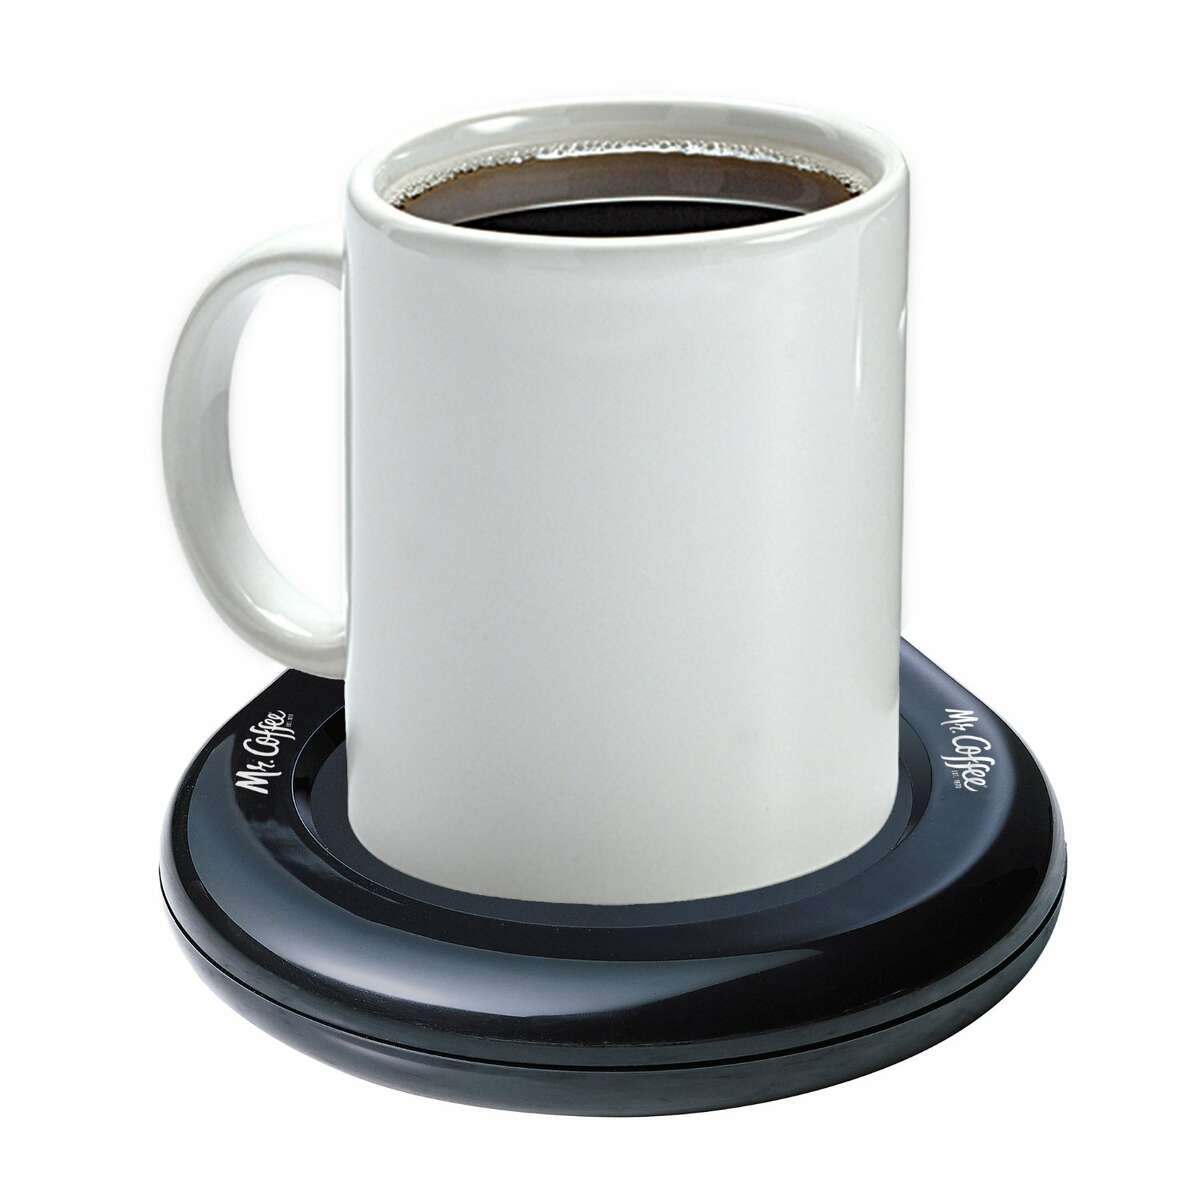 Mug Warmer, Mr.Coffee. $9.99 What better way to keep you feeling warm than with an everlasting hot drink? This mug warmer allows you to enjoy your hot coffee, tea, or cocoa for as long as you want without it going cold. To buy: mrcoffee.com